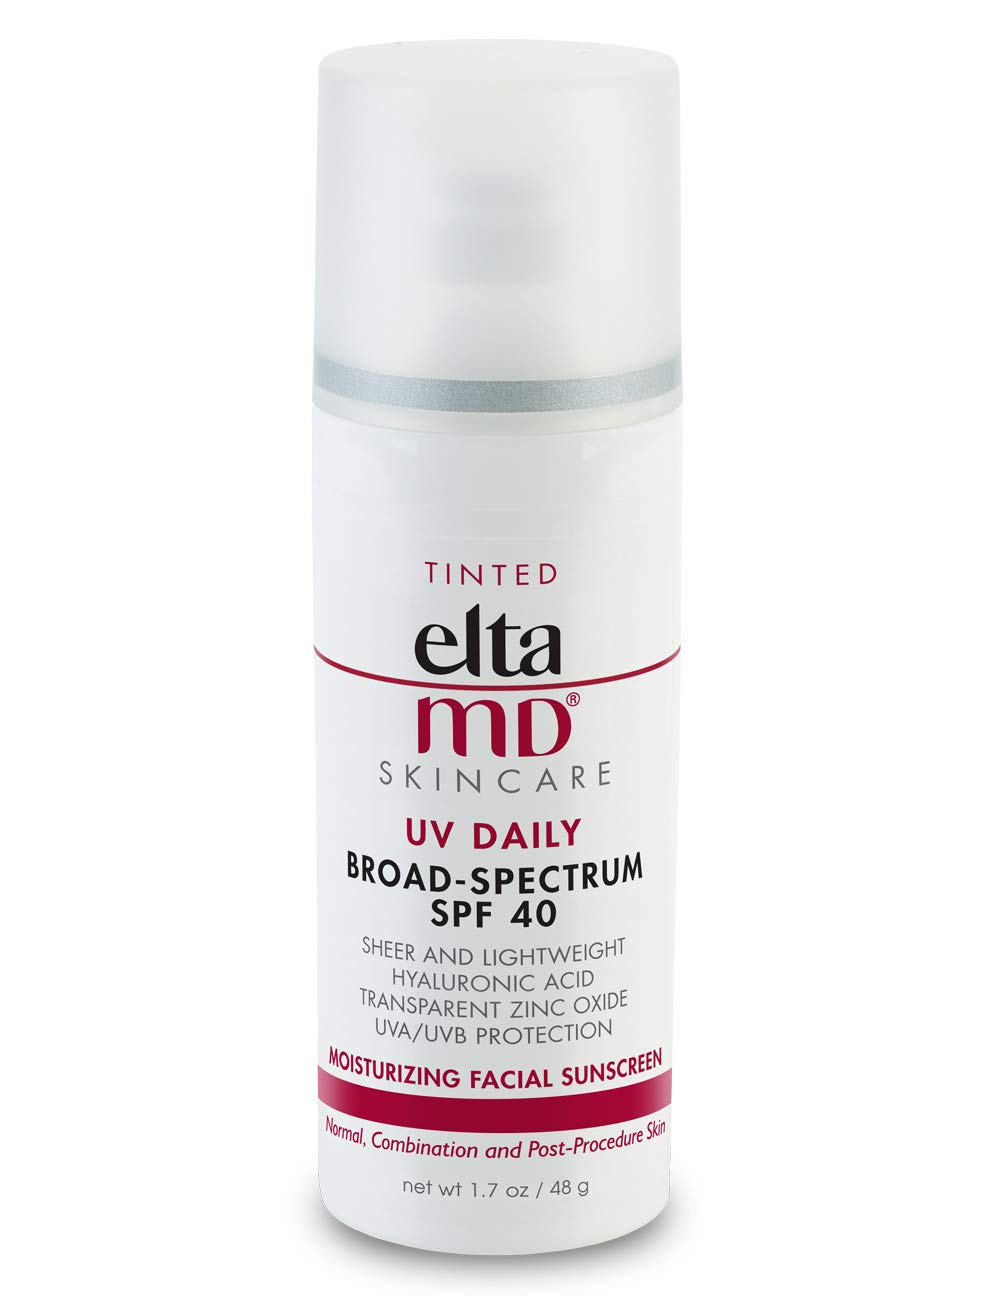 EltaMD UV Daily Tinted Facial Sunscreen Broad-Spectrum SPF 40 for Dry Skin, Dermatologist-Recommended Mineral-Based Zinc Oxide Formula, 1. 7 oz by ELTA MD